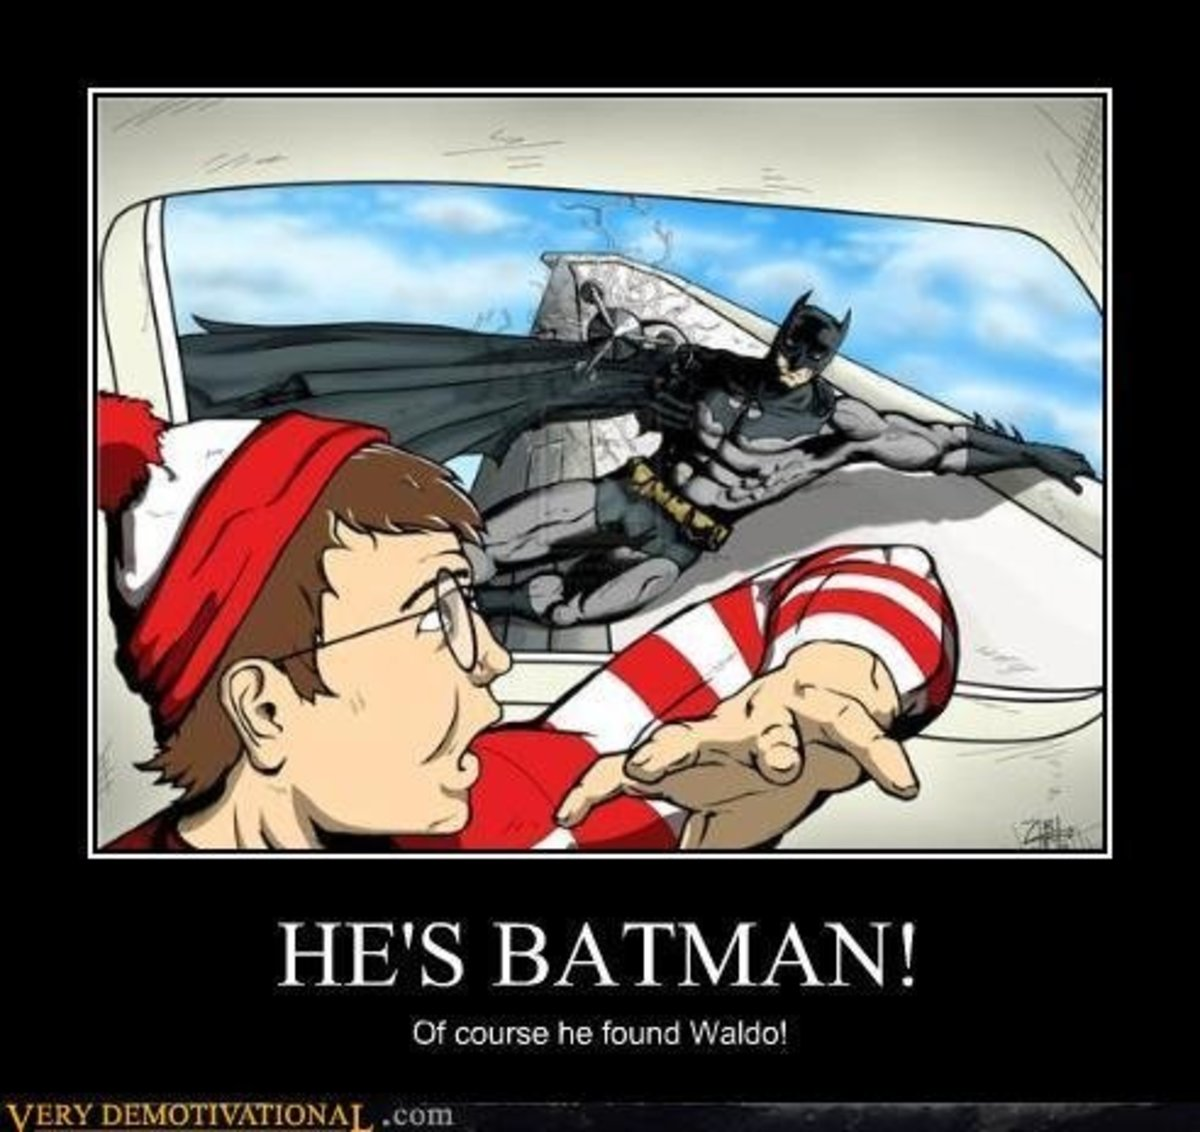 waldo, wheres waldo, batman, humor, jokes, comedy, funny